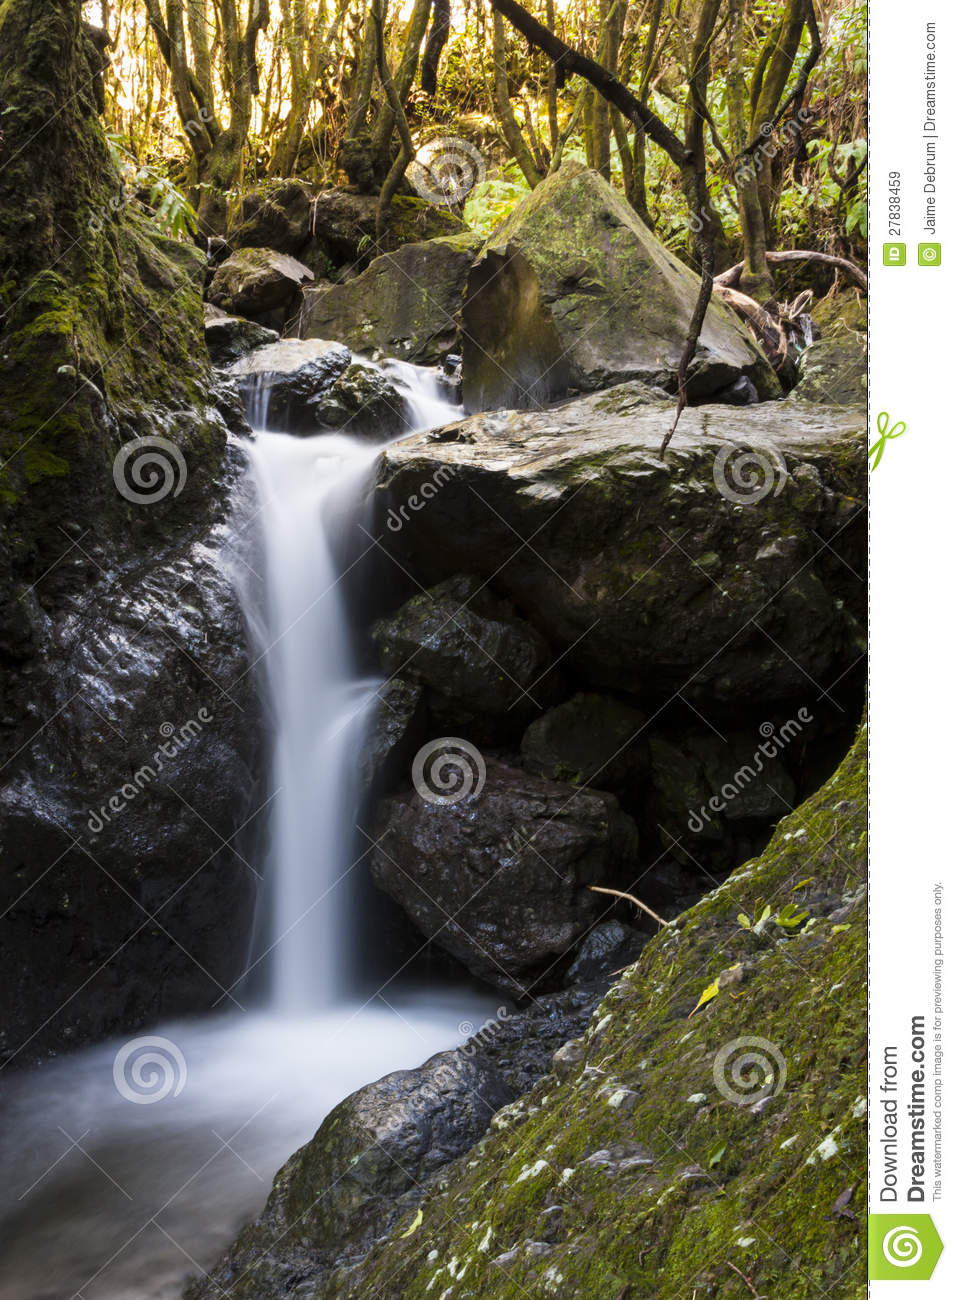 Forest Sounds stock image  Image of cascade, natural - 27838459